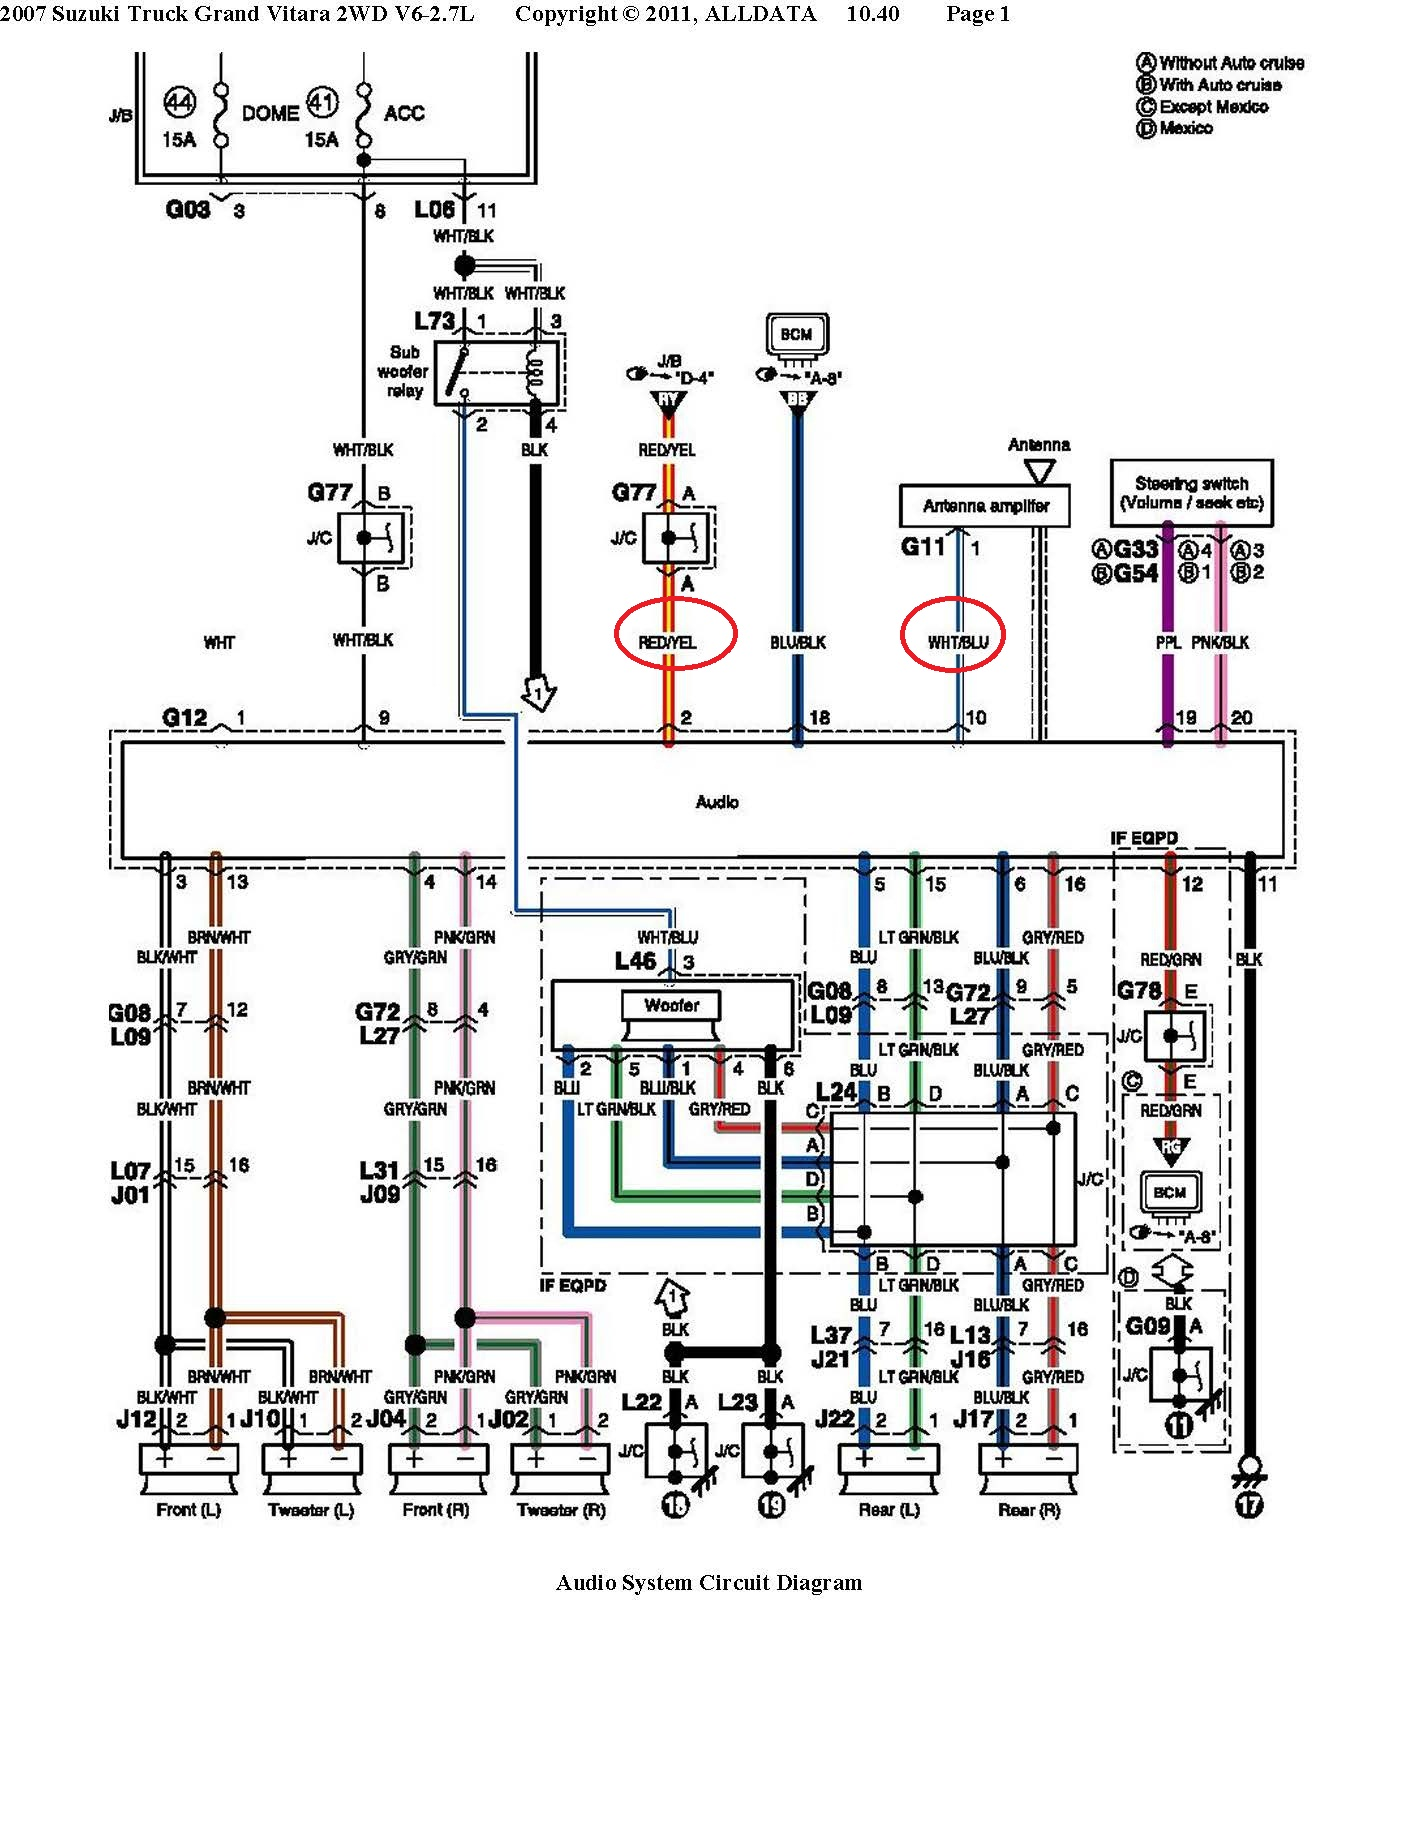 Suzuki Car Radio Stereo Audio Wiring Diagram Autoradio Connector 98 Corvette Schematics Wire Installation Schematic Schema Esquema De Conexiones Stecker Konektor Connecteur Cable